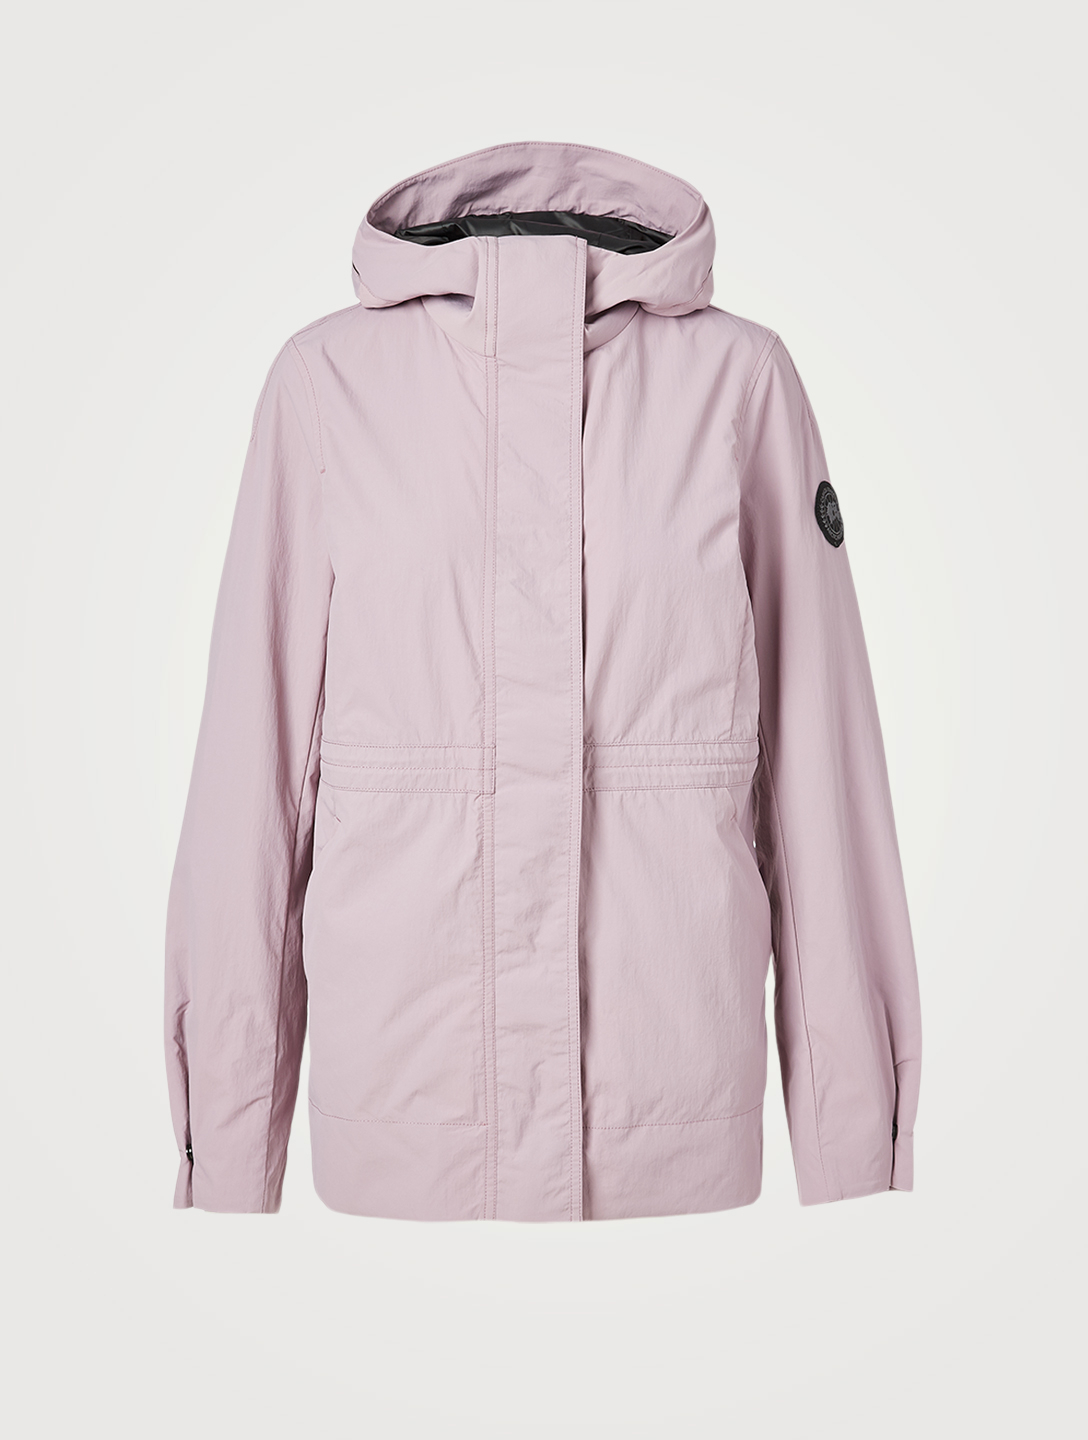 CANADA GOOSE Davie Black Label Jacket With Hood Women's Purple